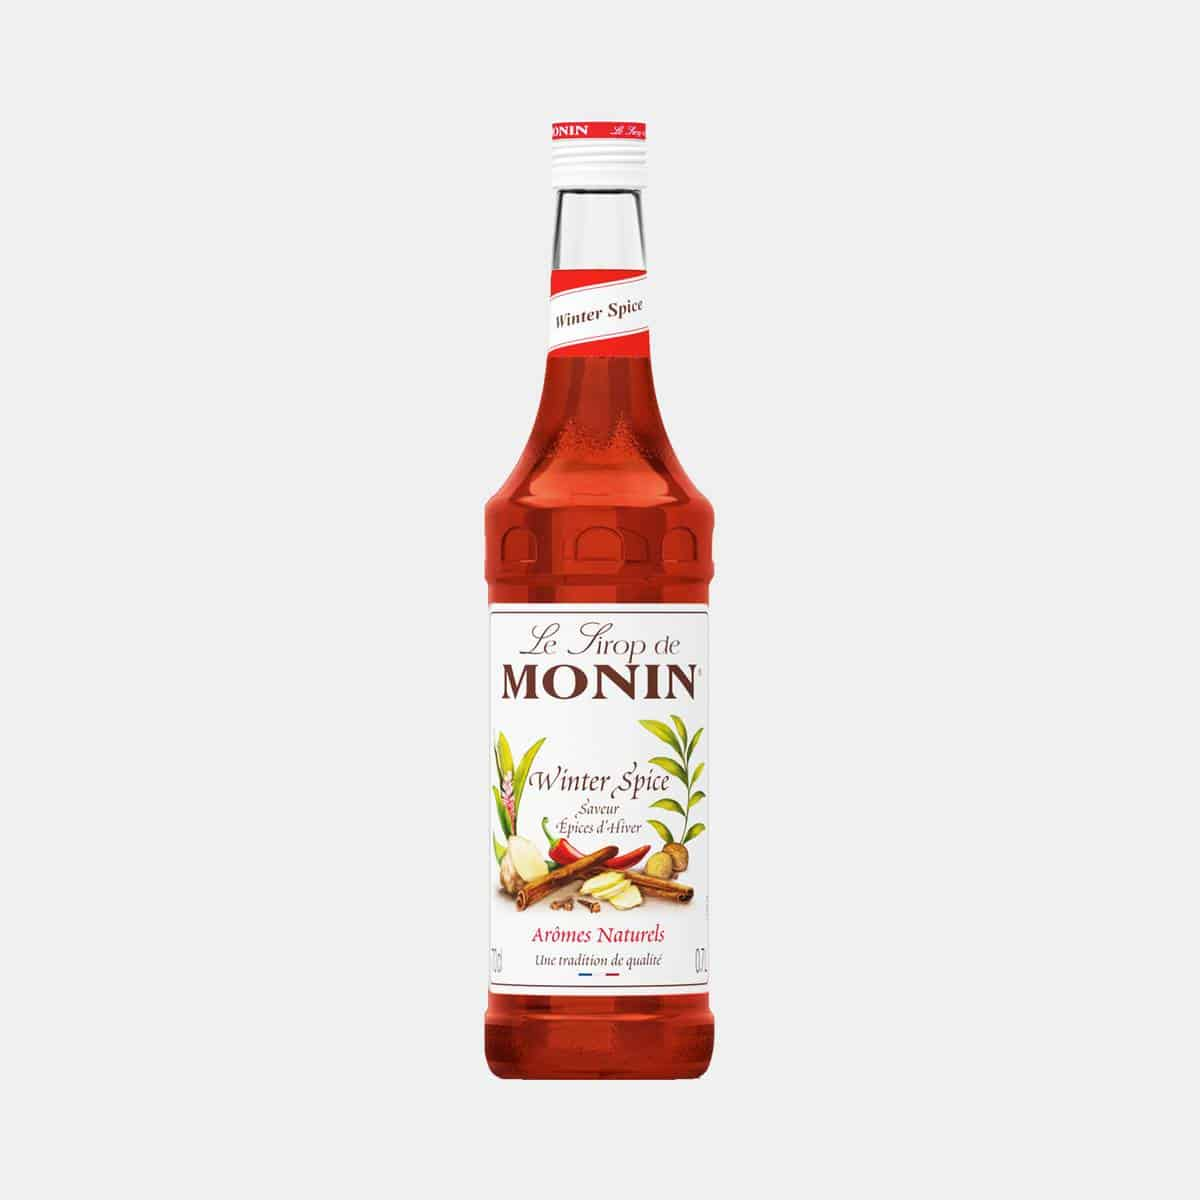 Monin Syrup Winter Spice 700ml Glass Bottle